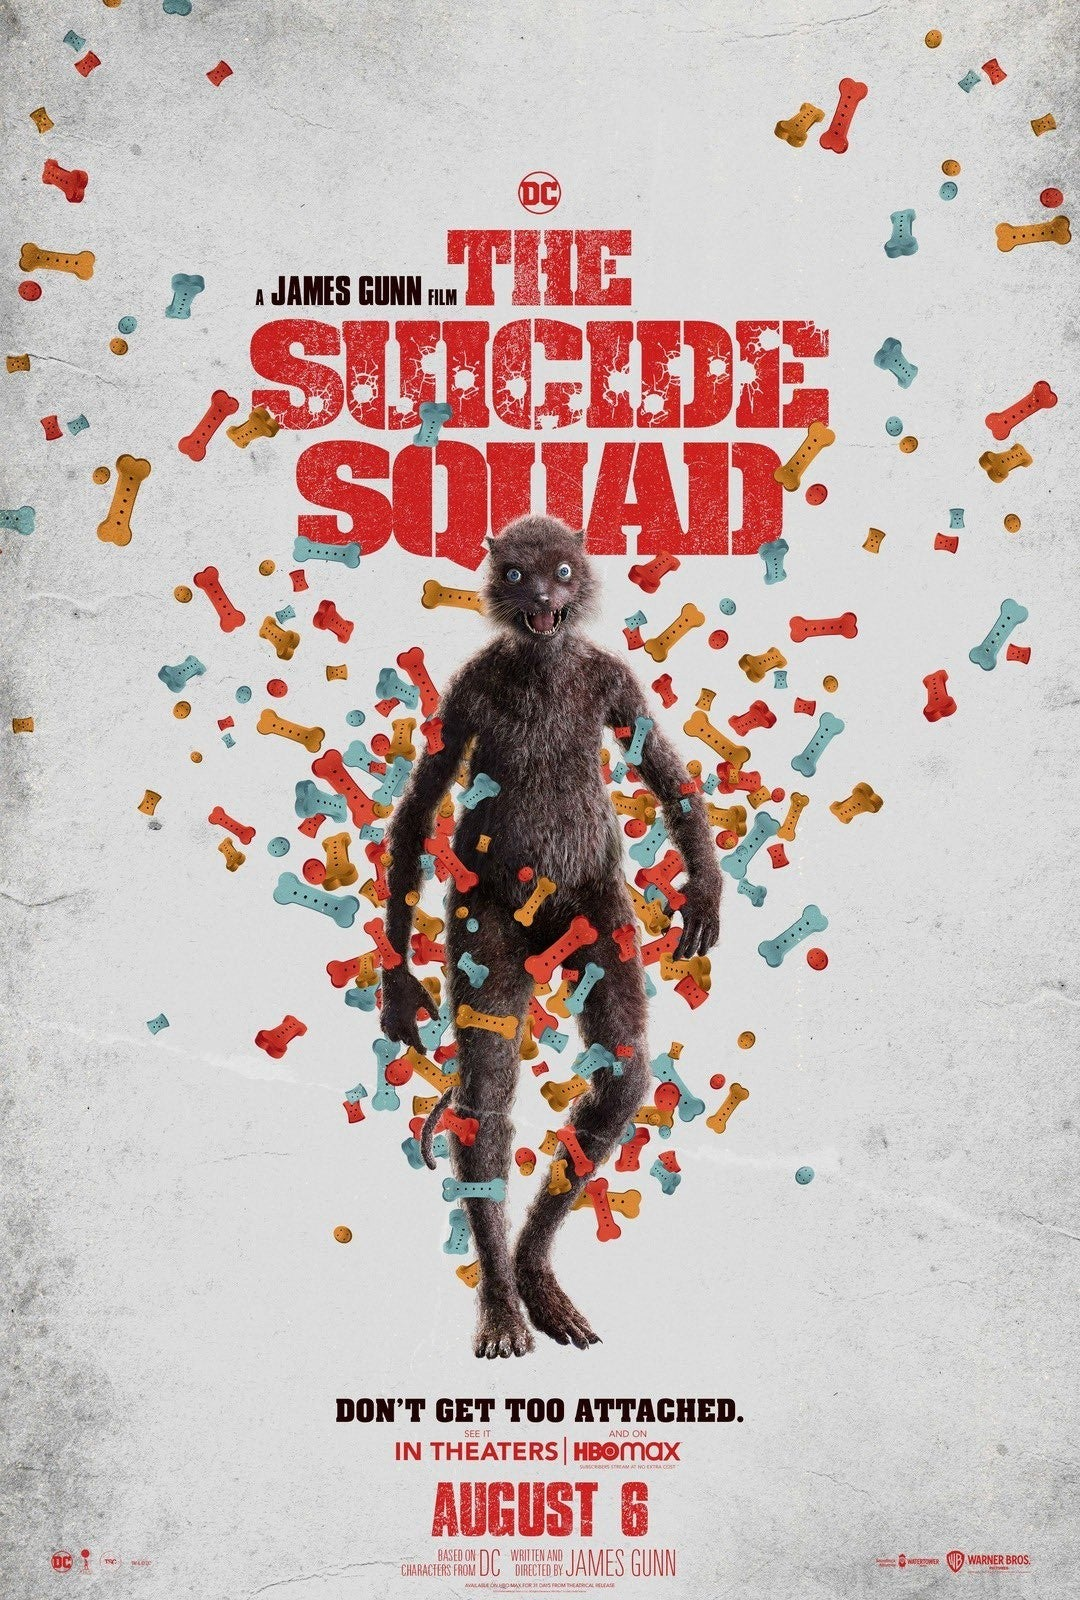 The Suicide Squad Trailer Posters Weasel